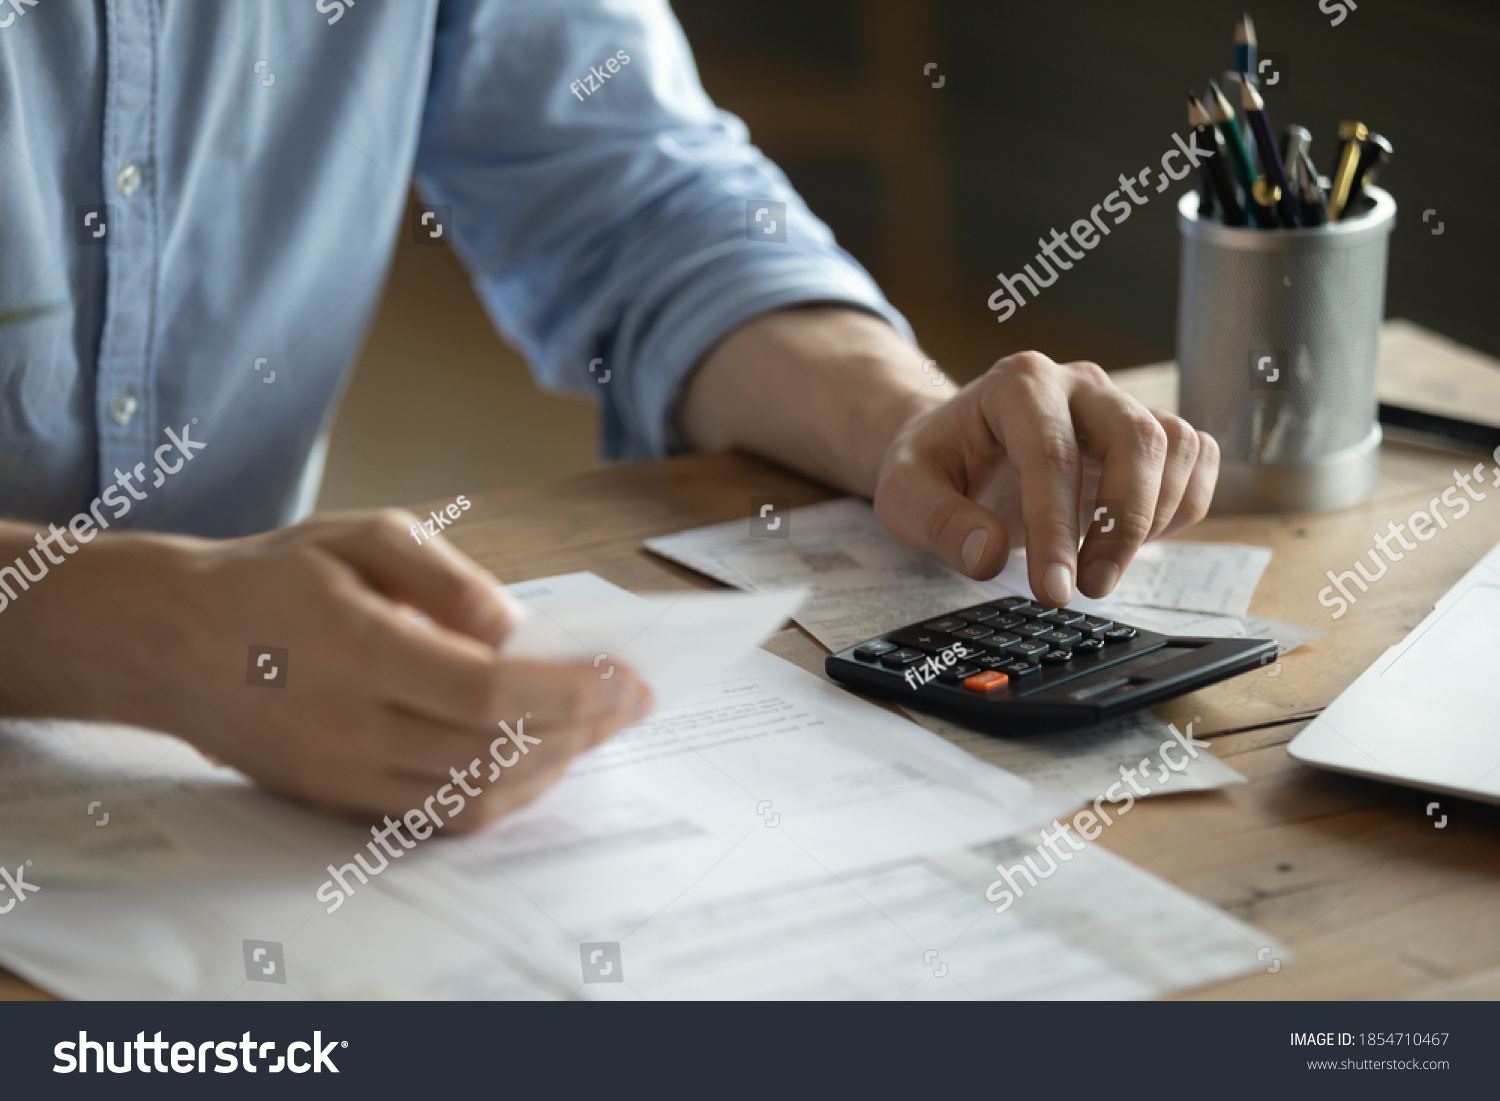 Personal finance management, accounting concept. Close up view man sitting at table using calculator performs arithmetic operations calculates costs per month, manage family budget, control expenses #1854710467